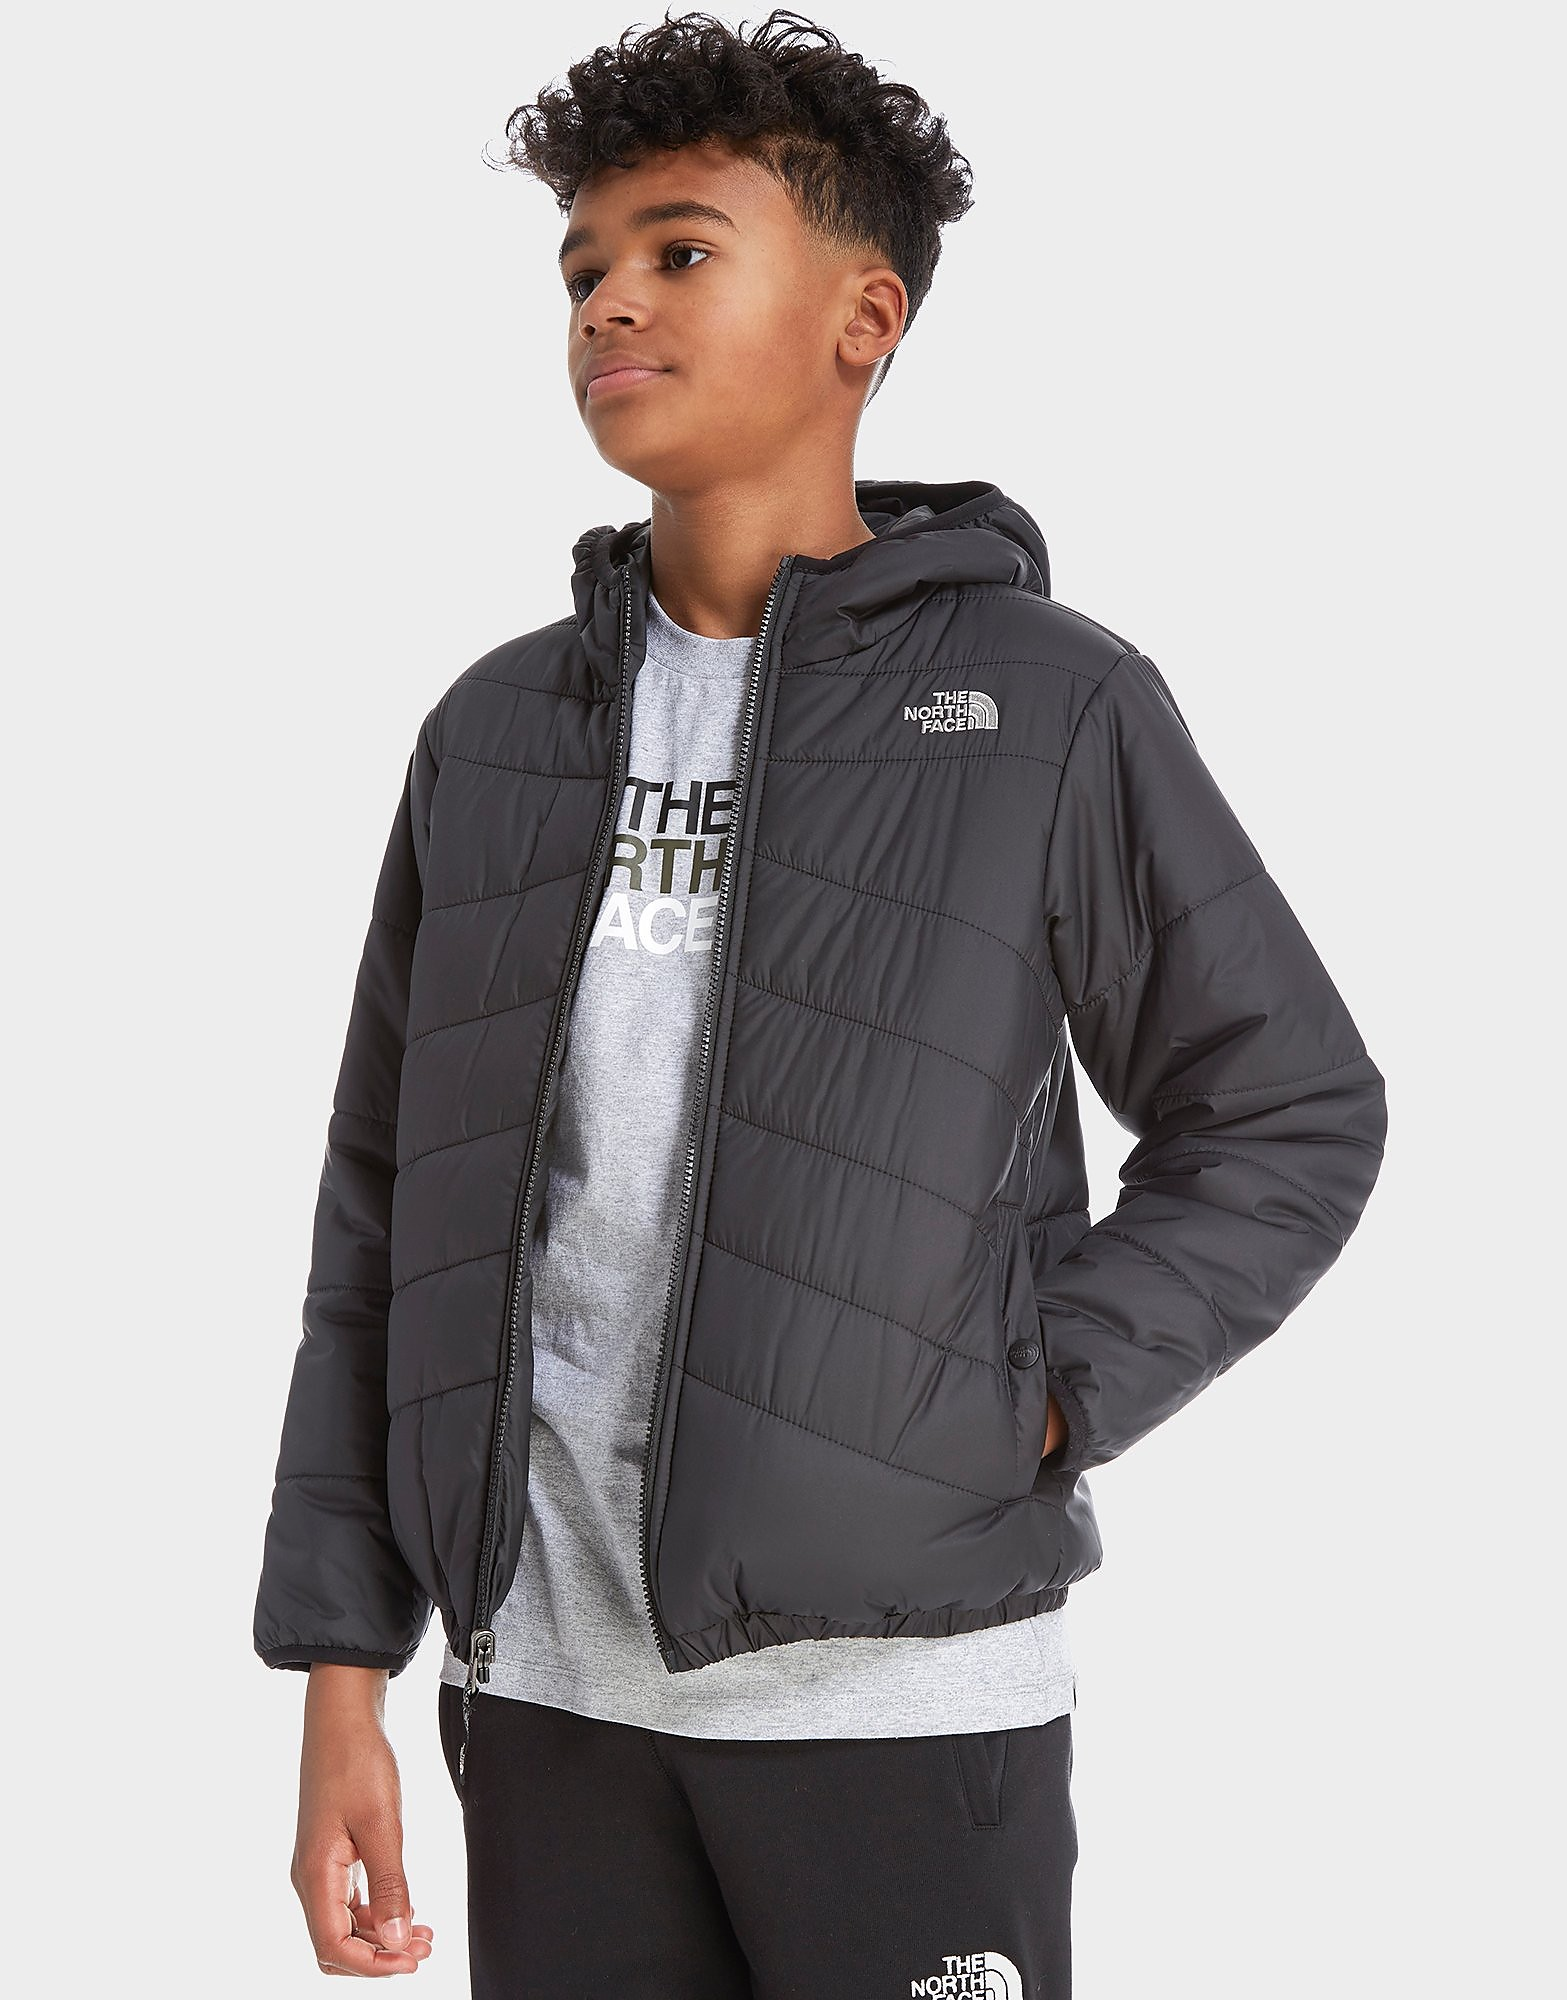 The North Face Perrito vändbar jacka för juniorer